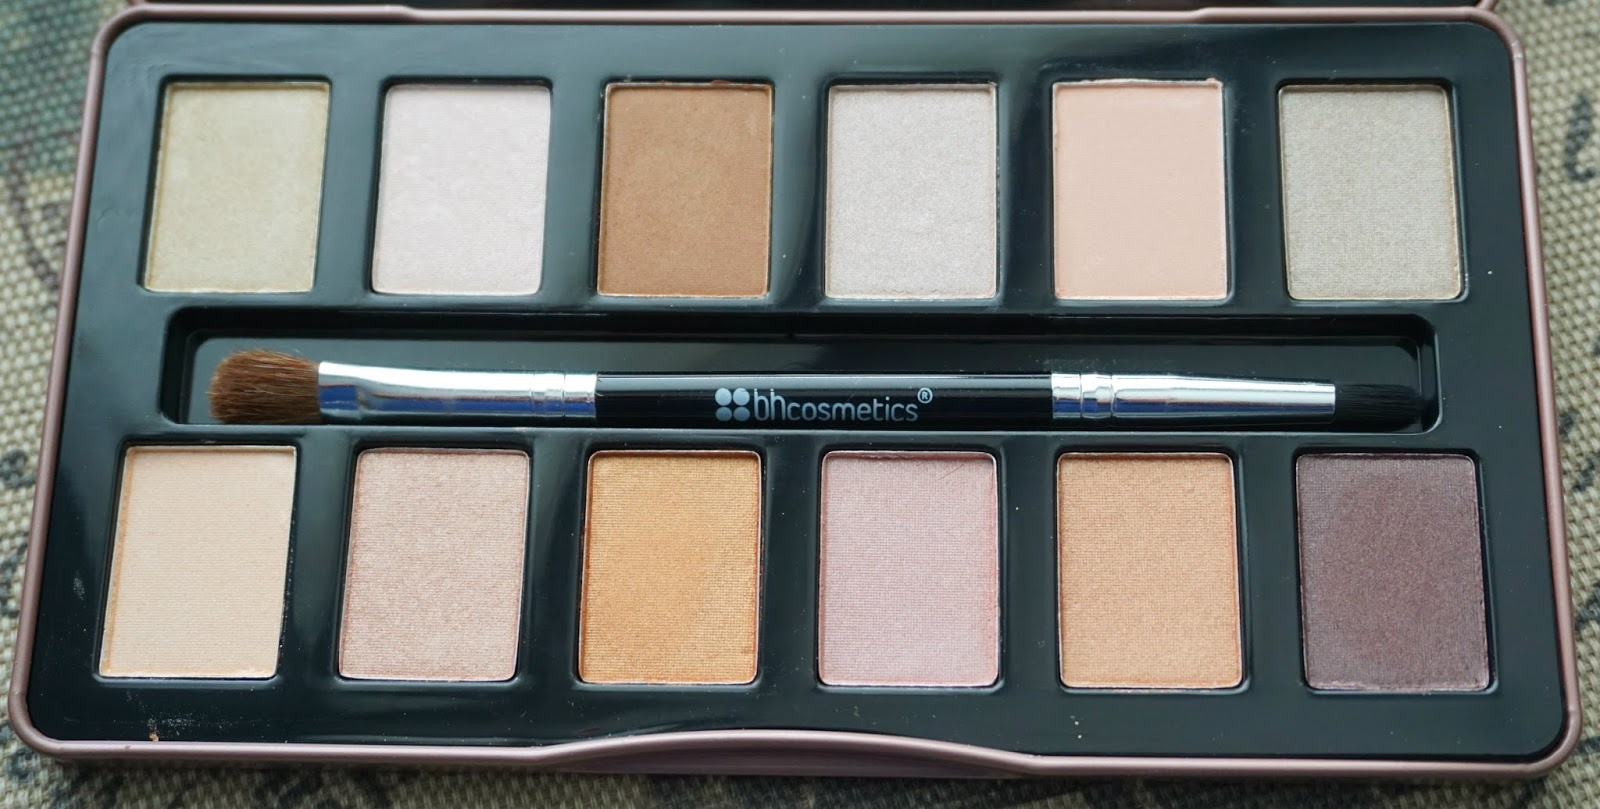 BH Cosmetics Nude Rose Highlighter, Health & Beauty on